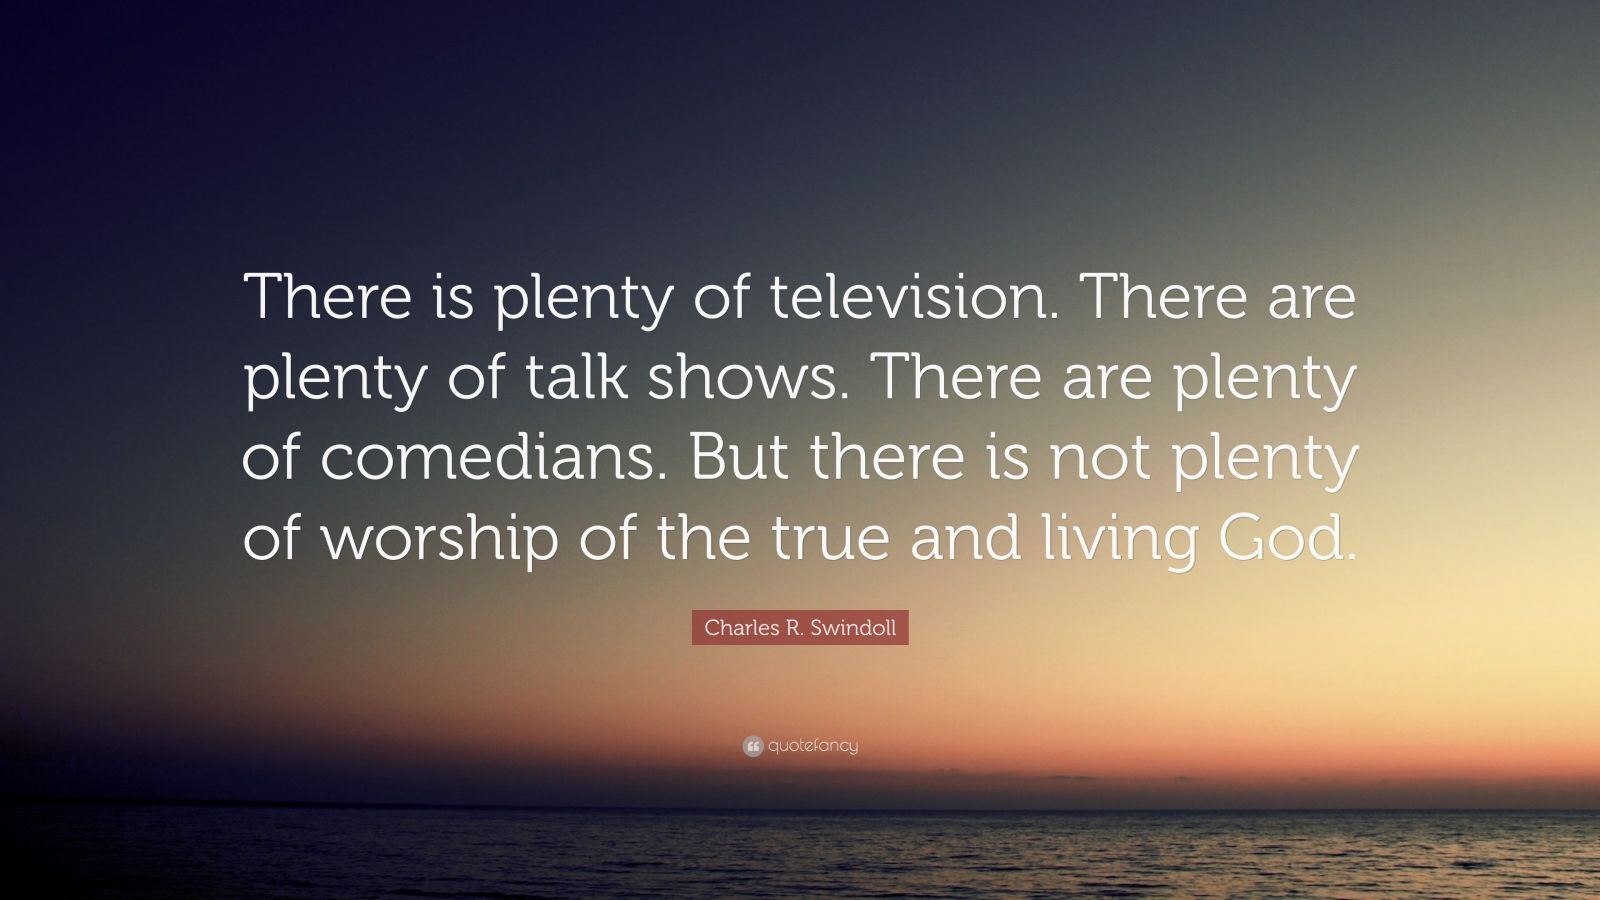 """Charles R. Swindoll Quote: """"There is plenty of television. There are plenty of talk shows. There are plenty of comedians. But there is not plenty of worship of the true and living God."""""""